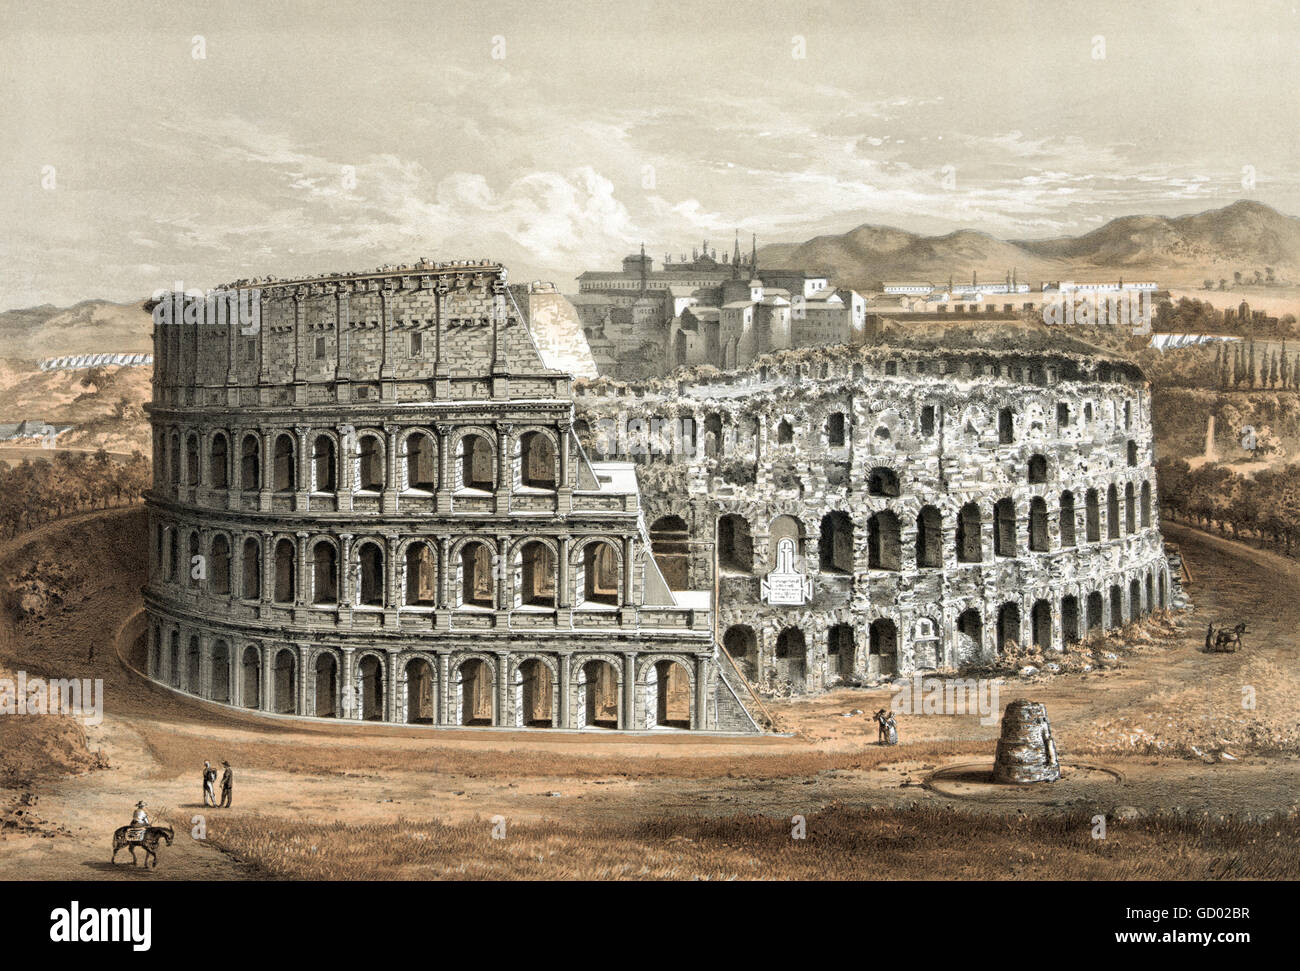 Colossseum in Rome.19th century illustration showing 'original structure and deteriorated state'. Lithograph - Stock Image